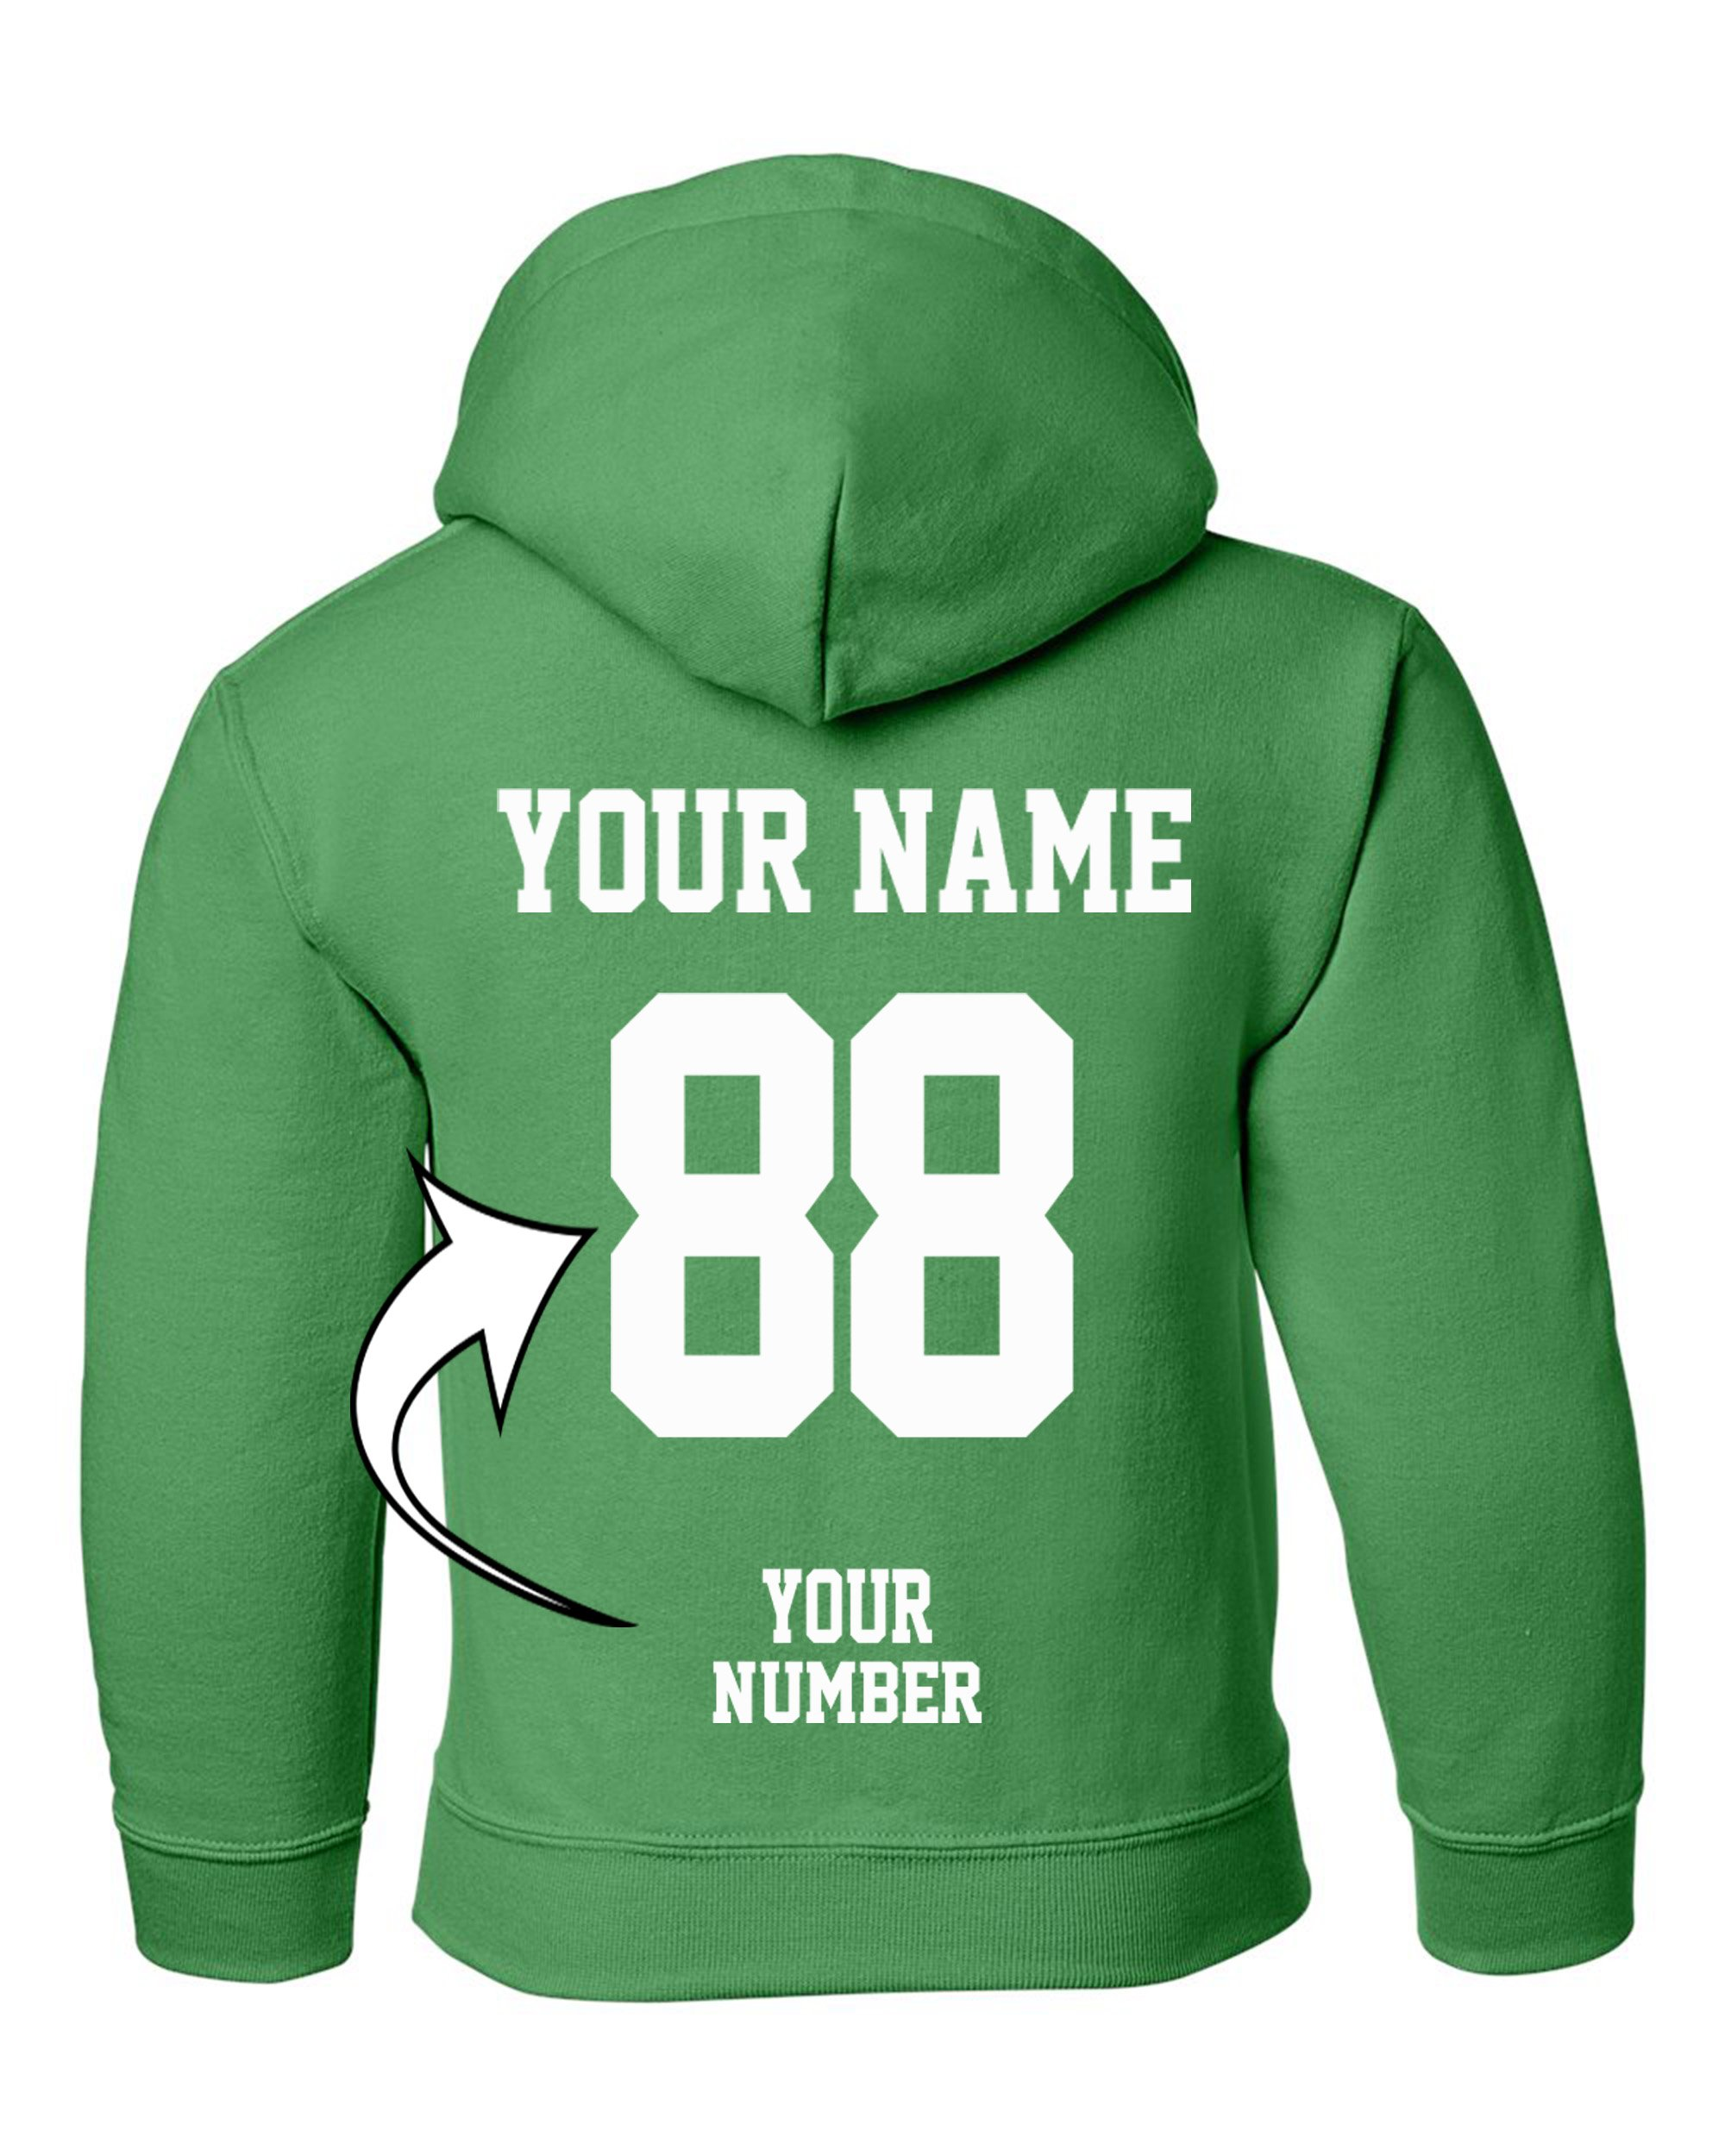 Tee Miracle Custom Hoodies For Youth - Design Your Own Jersey - Pullover Hooded Team Sweaters